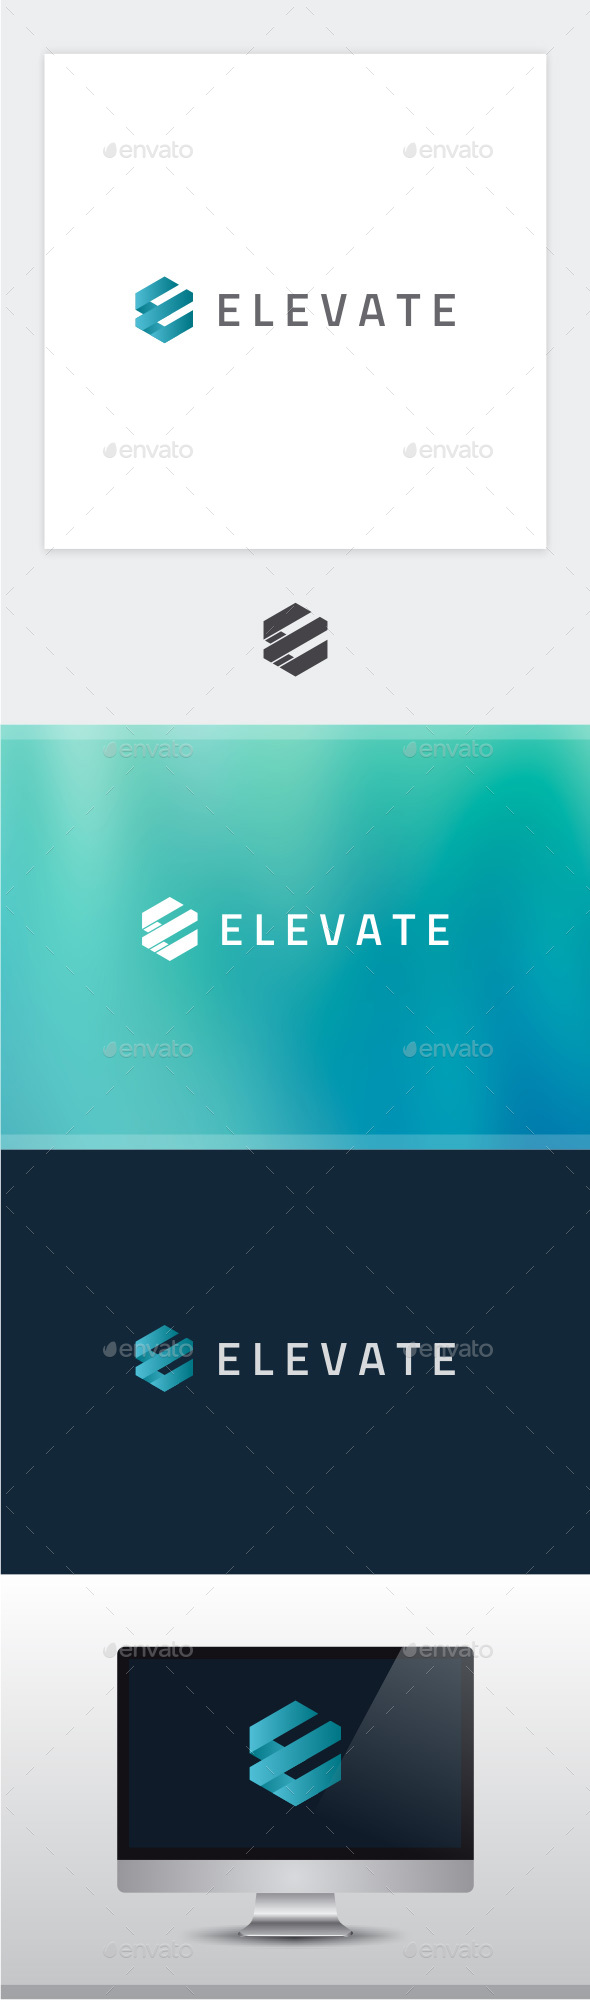 Elevate - Letter E Logo - 3d Abstract